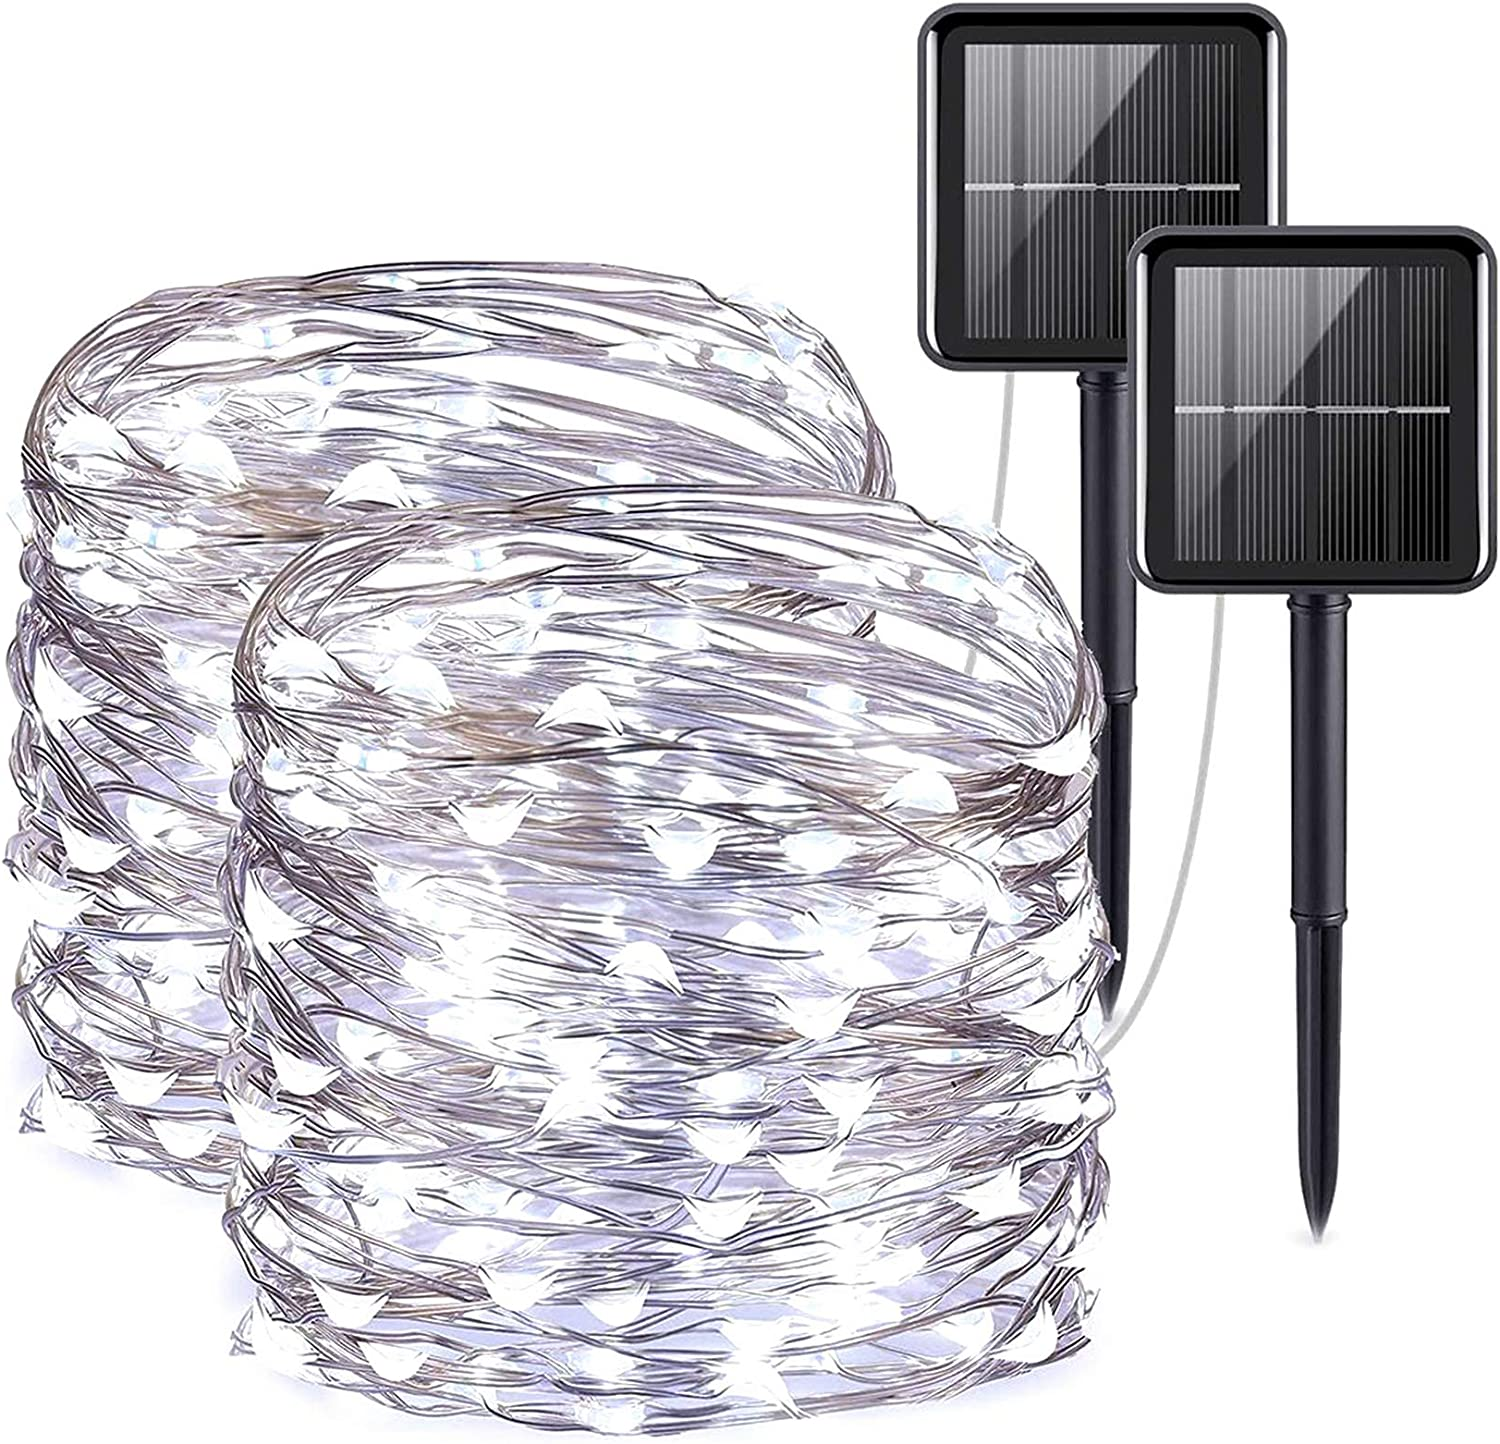 Solar String Lights Outdoor,33FT Waterproof Solar Powered String Lights,Solar Fairy Lights,Led Christmas String Lights,Solar Copper Tree Lights, 8 Modes, 2x100LED(White)